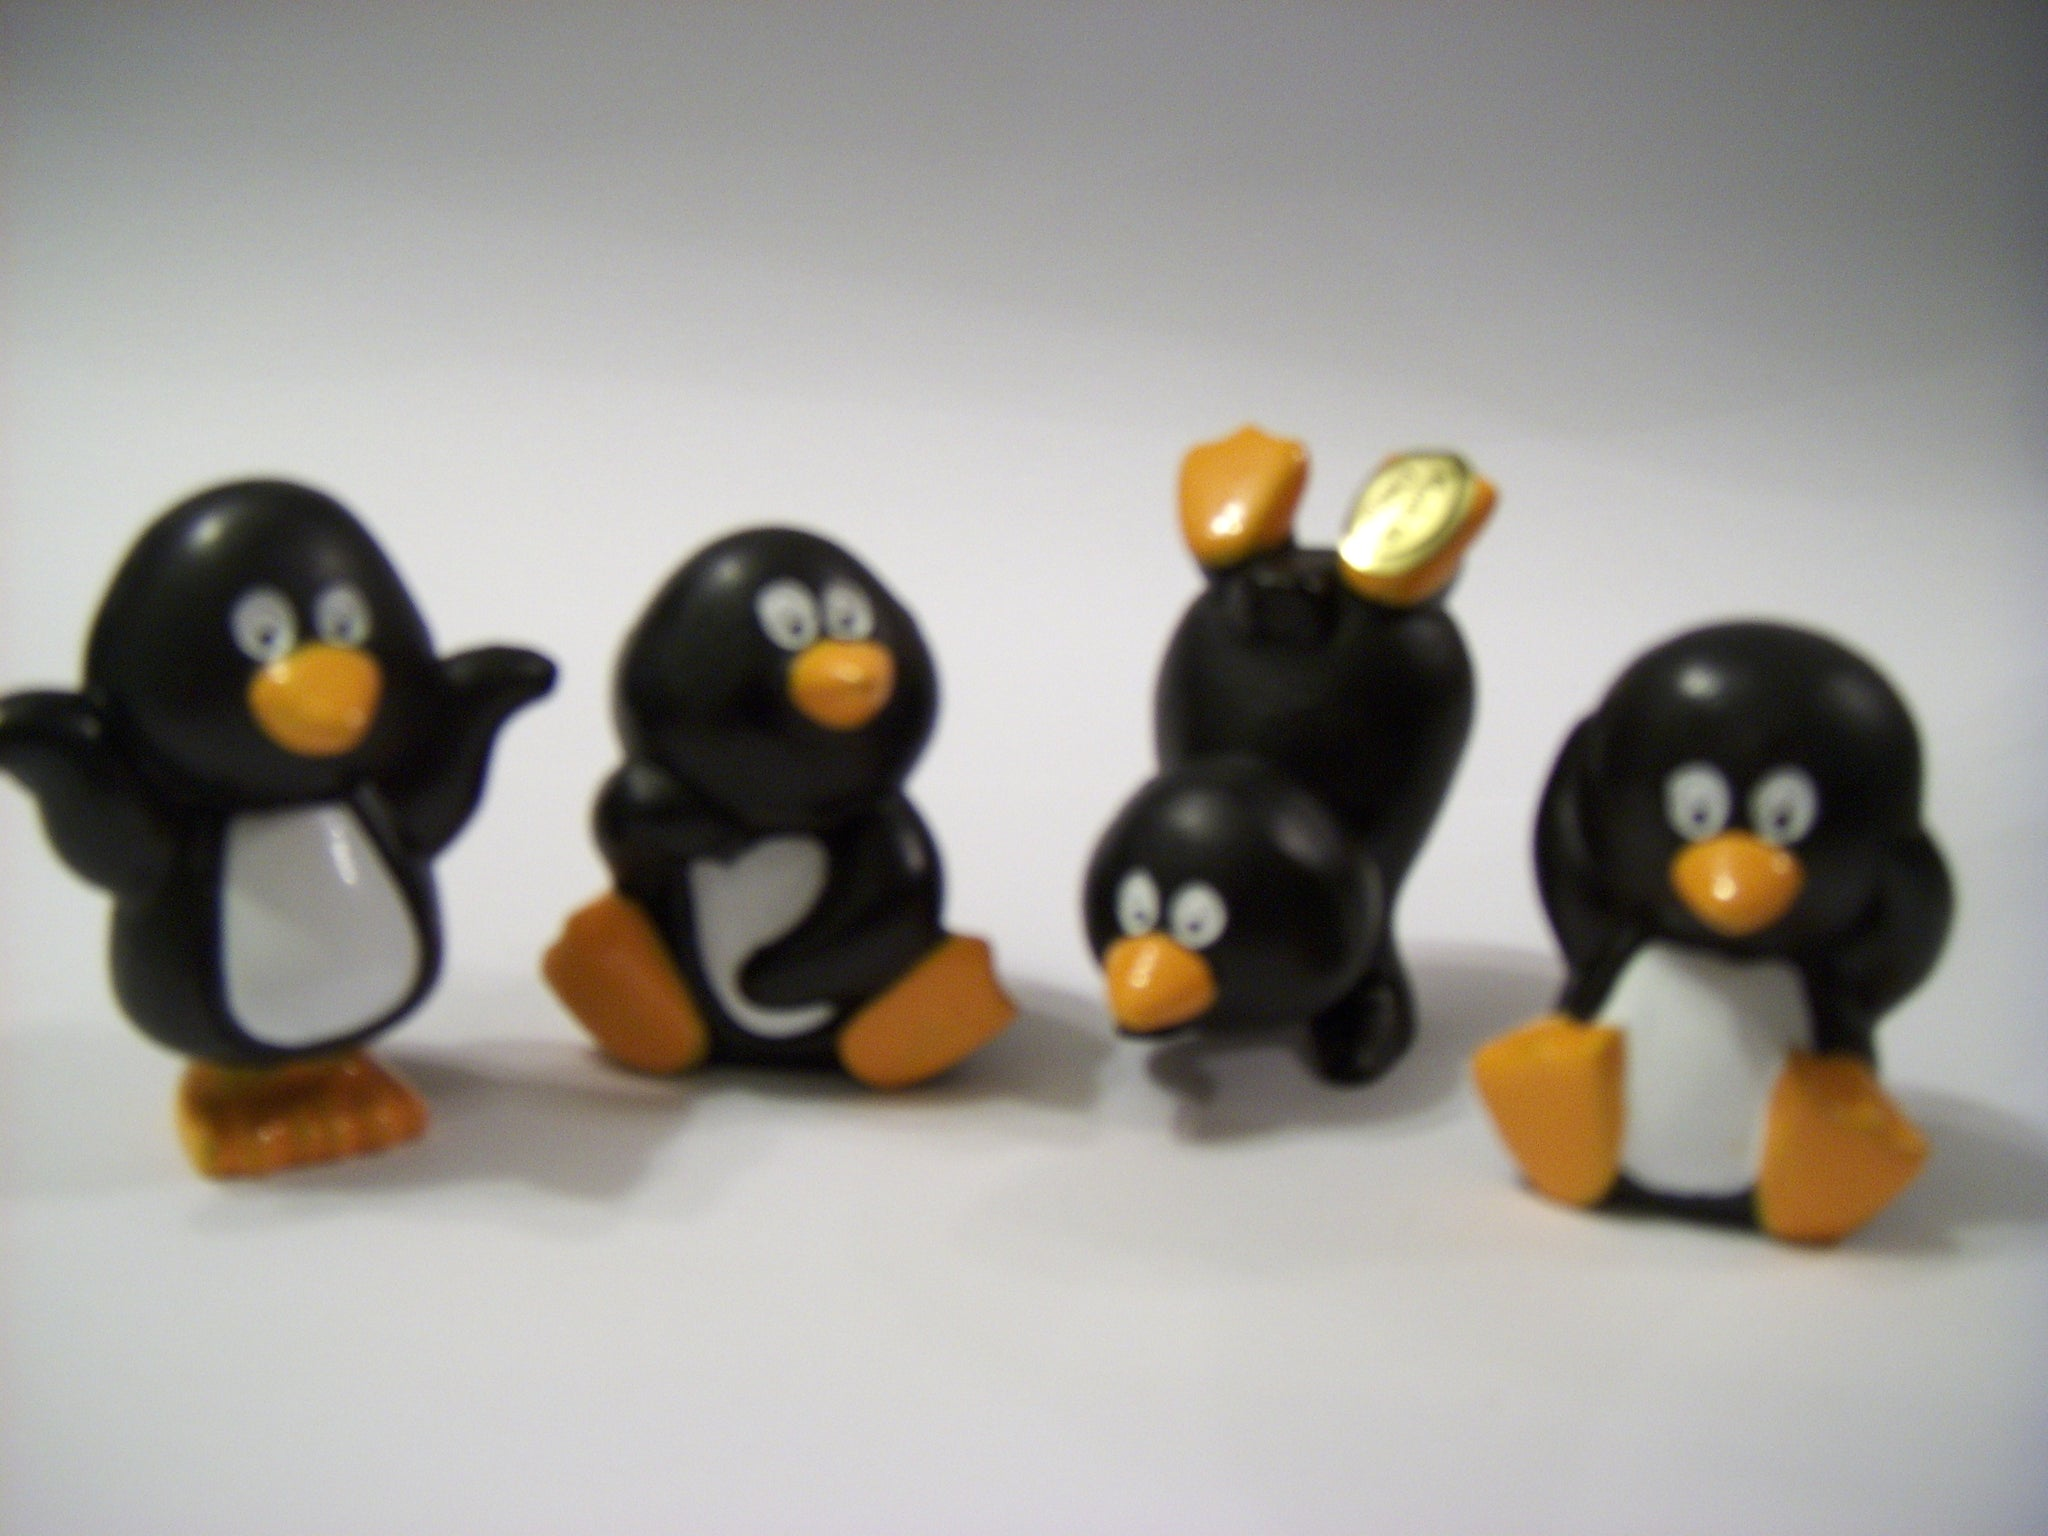 Penguins - 40mm. Design may vary